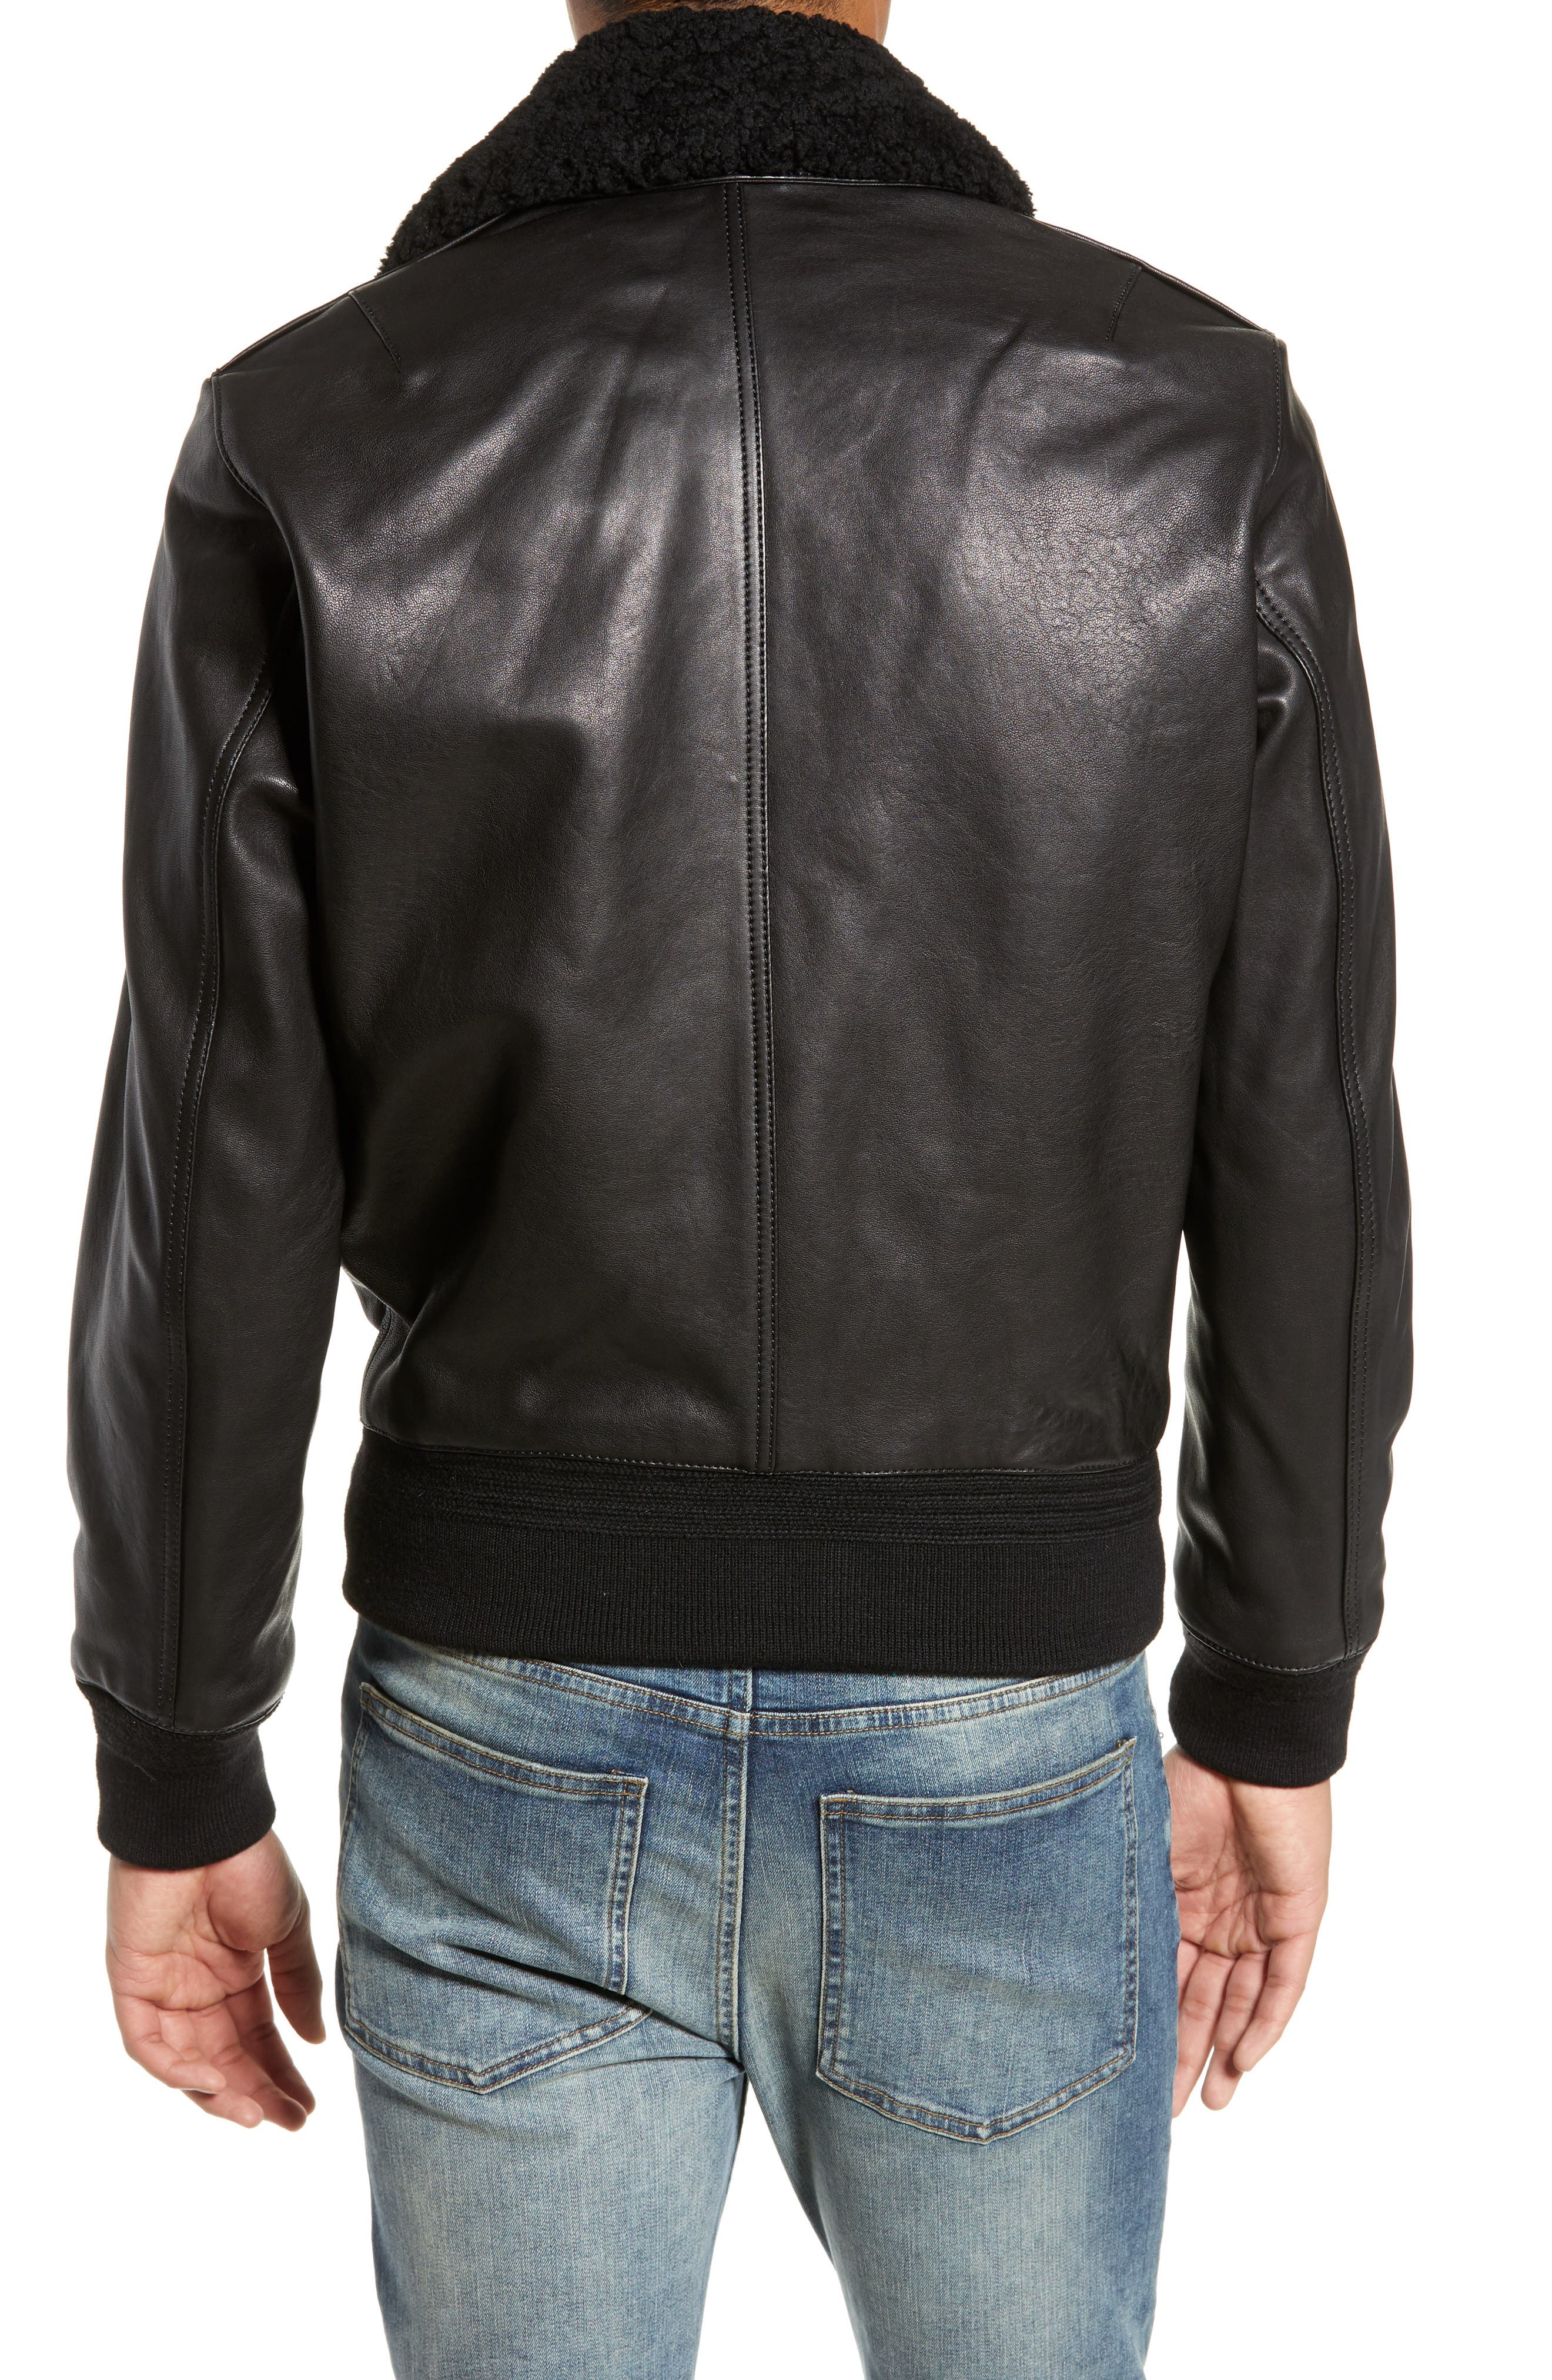 THE KOOPLES, Teddy Leather Jacket with Removable Genuine Lamb Shearling Trim, Alternate thumbnail 2, color, 001